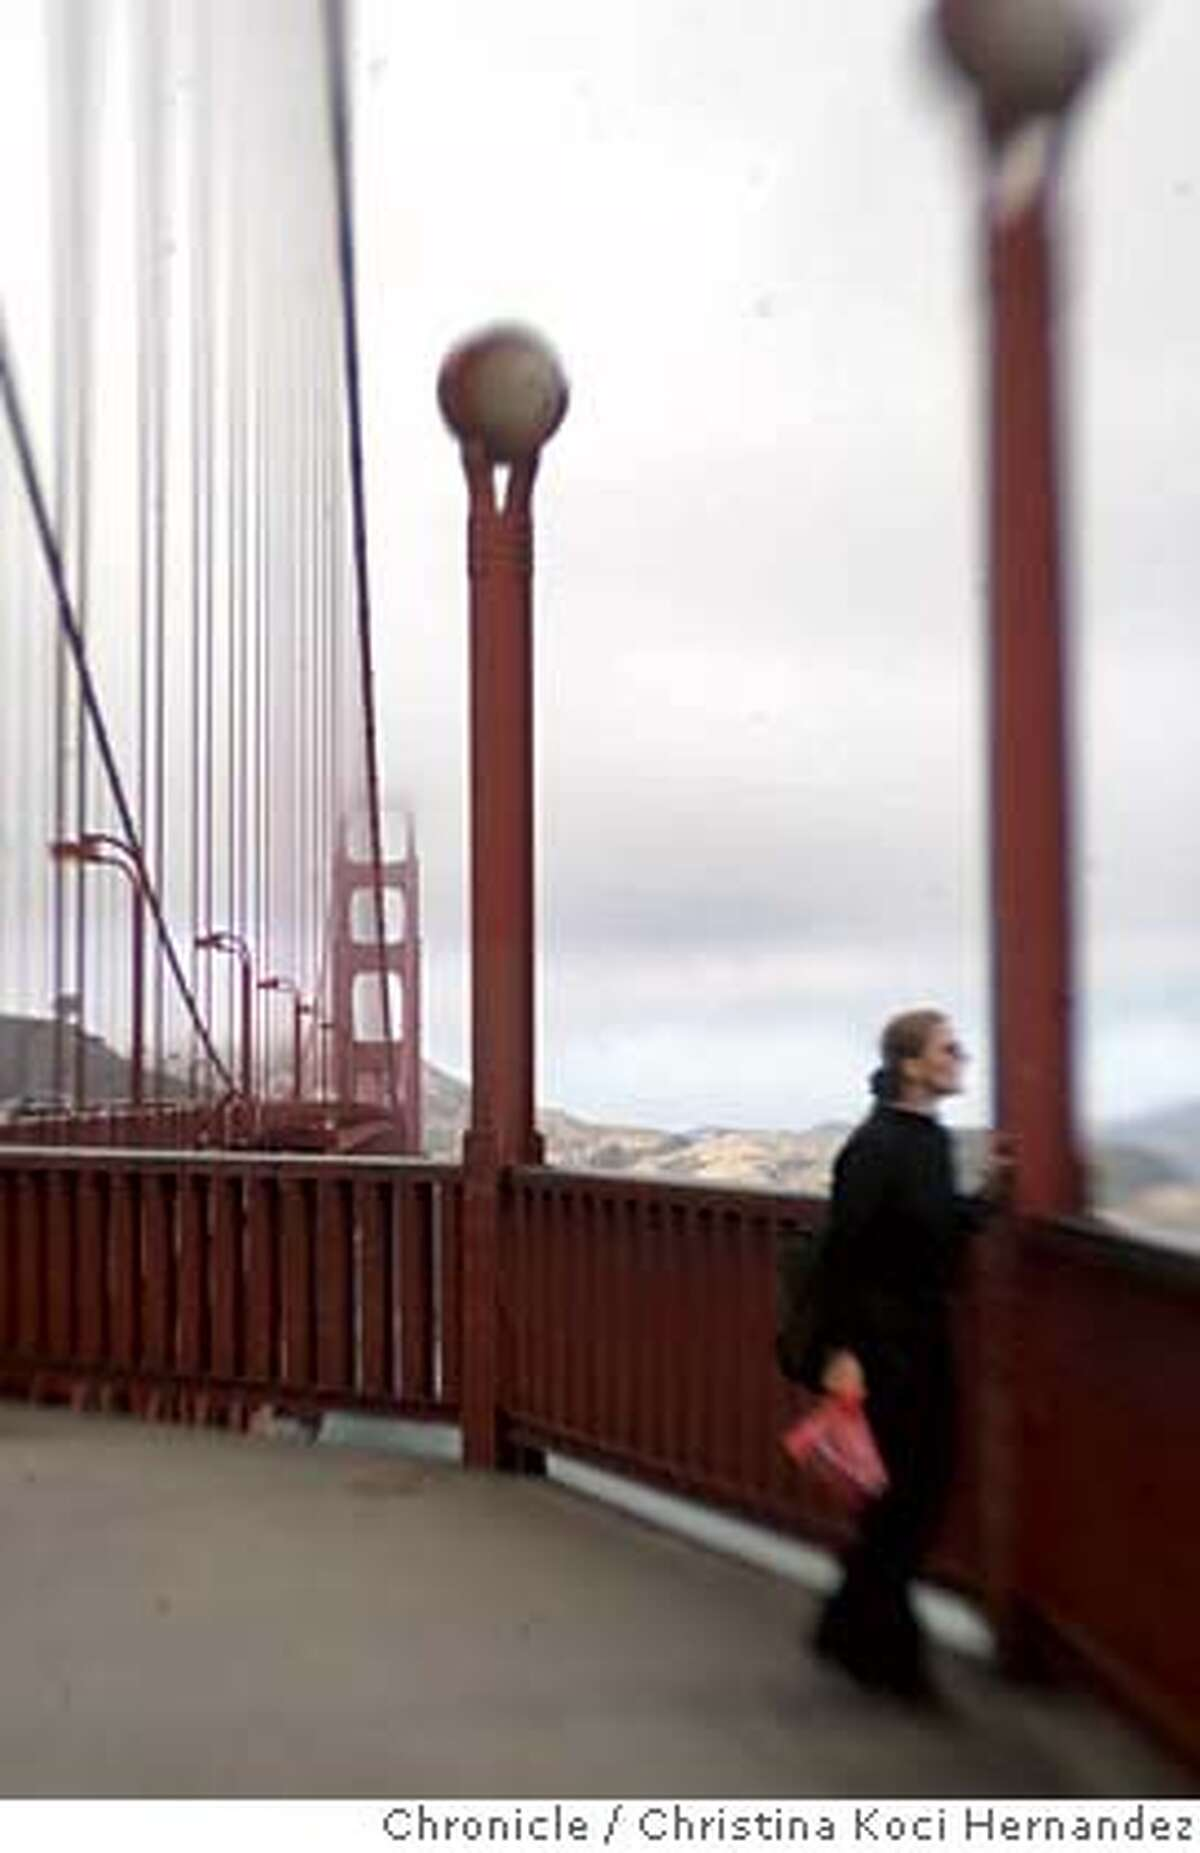 """CHRISTINA KOCI HERNANDEZ/CHRONICLE Photos of the Golden gate Bridge. Story on GG Bridge suicides for story, """"Lethal Beauty."""""""